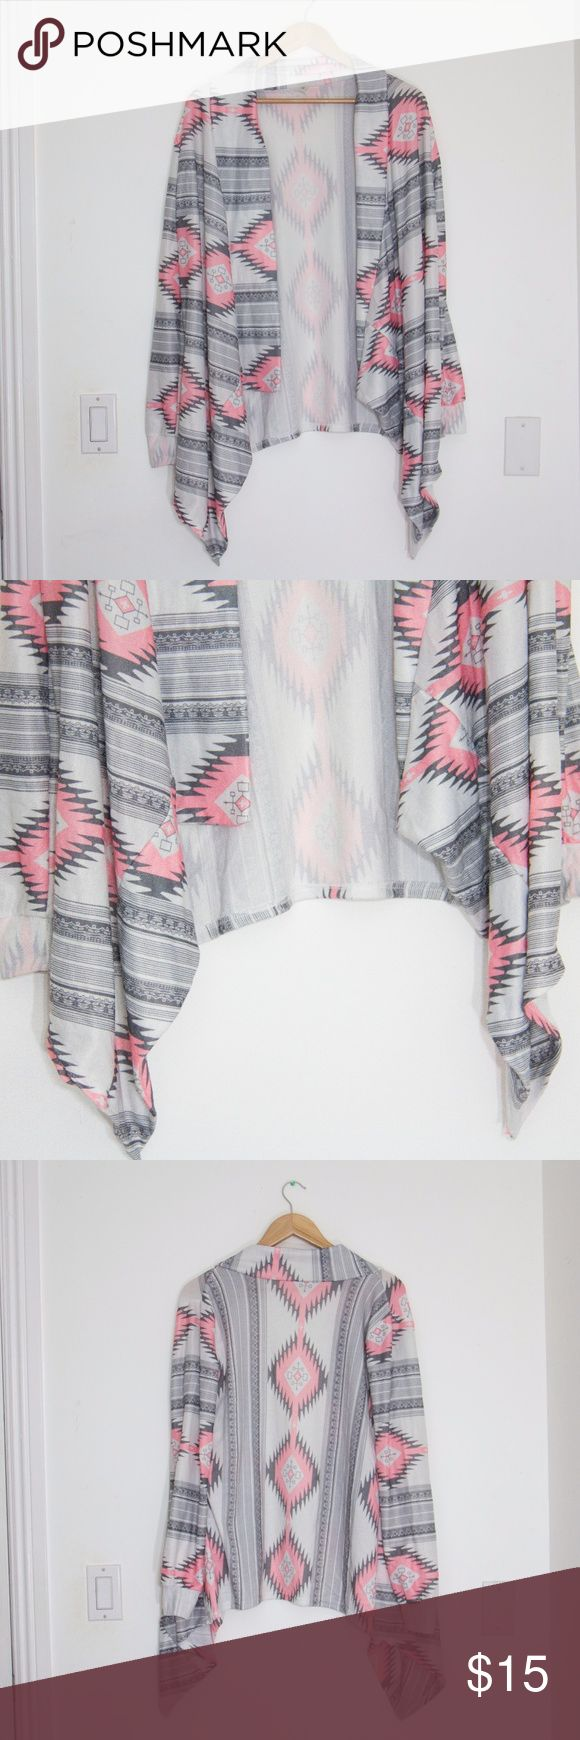 Tribal Print Cardigan Size L Brand: Hua Lan Size: L Material: Tag does not say  Condition: Excellent, no flaws! Sweaters Cardigans